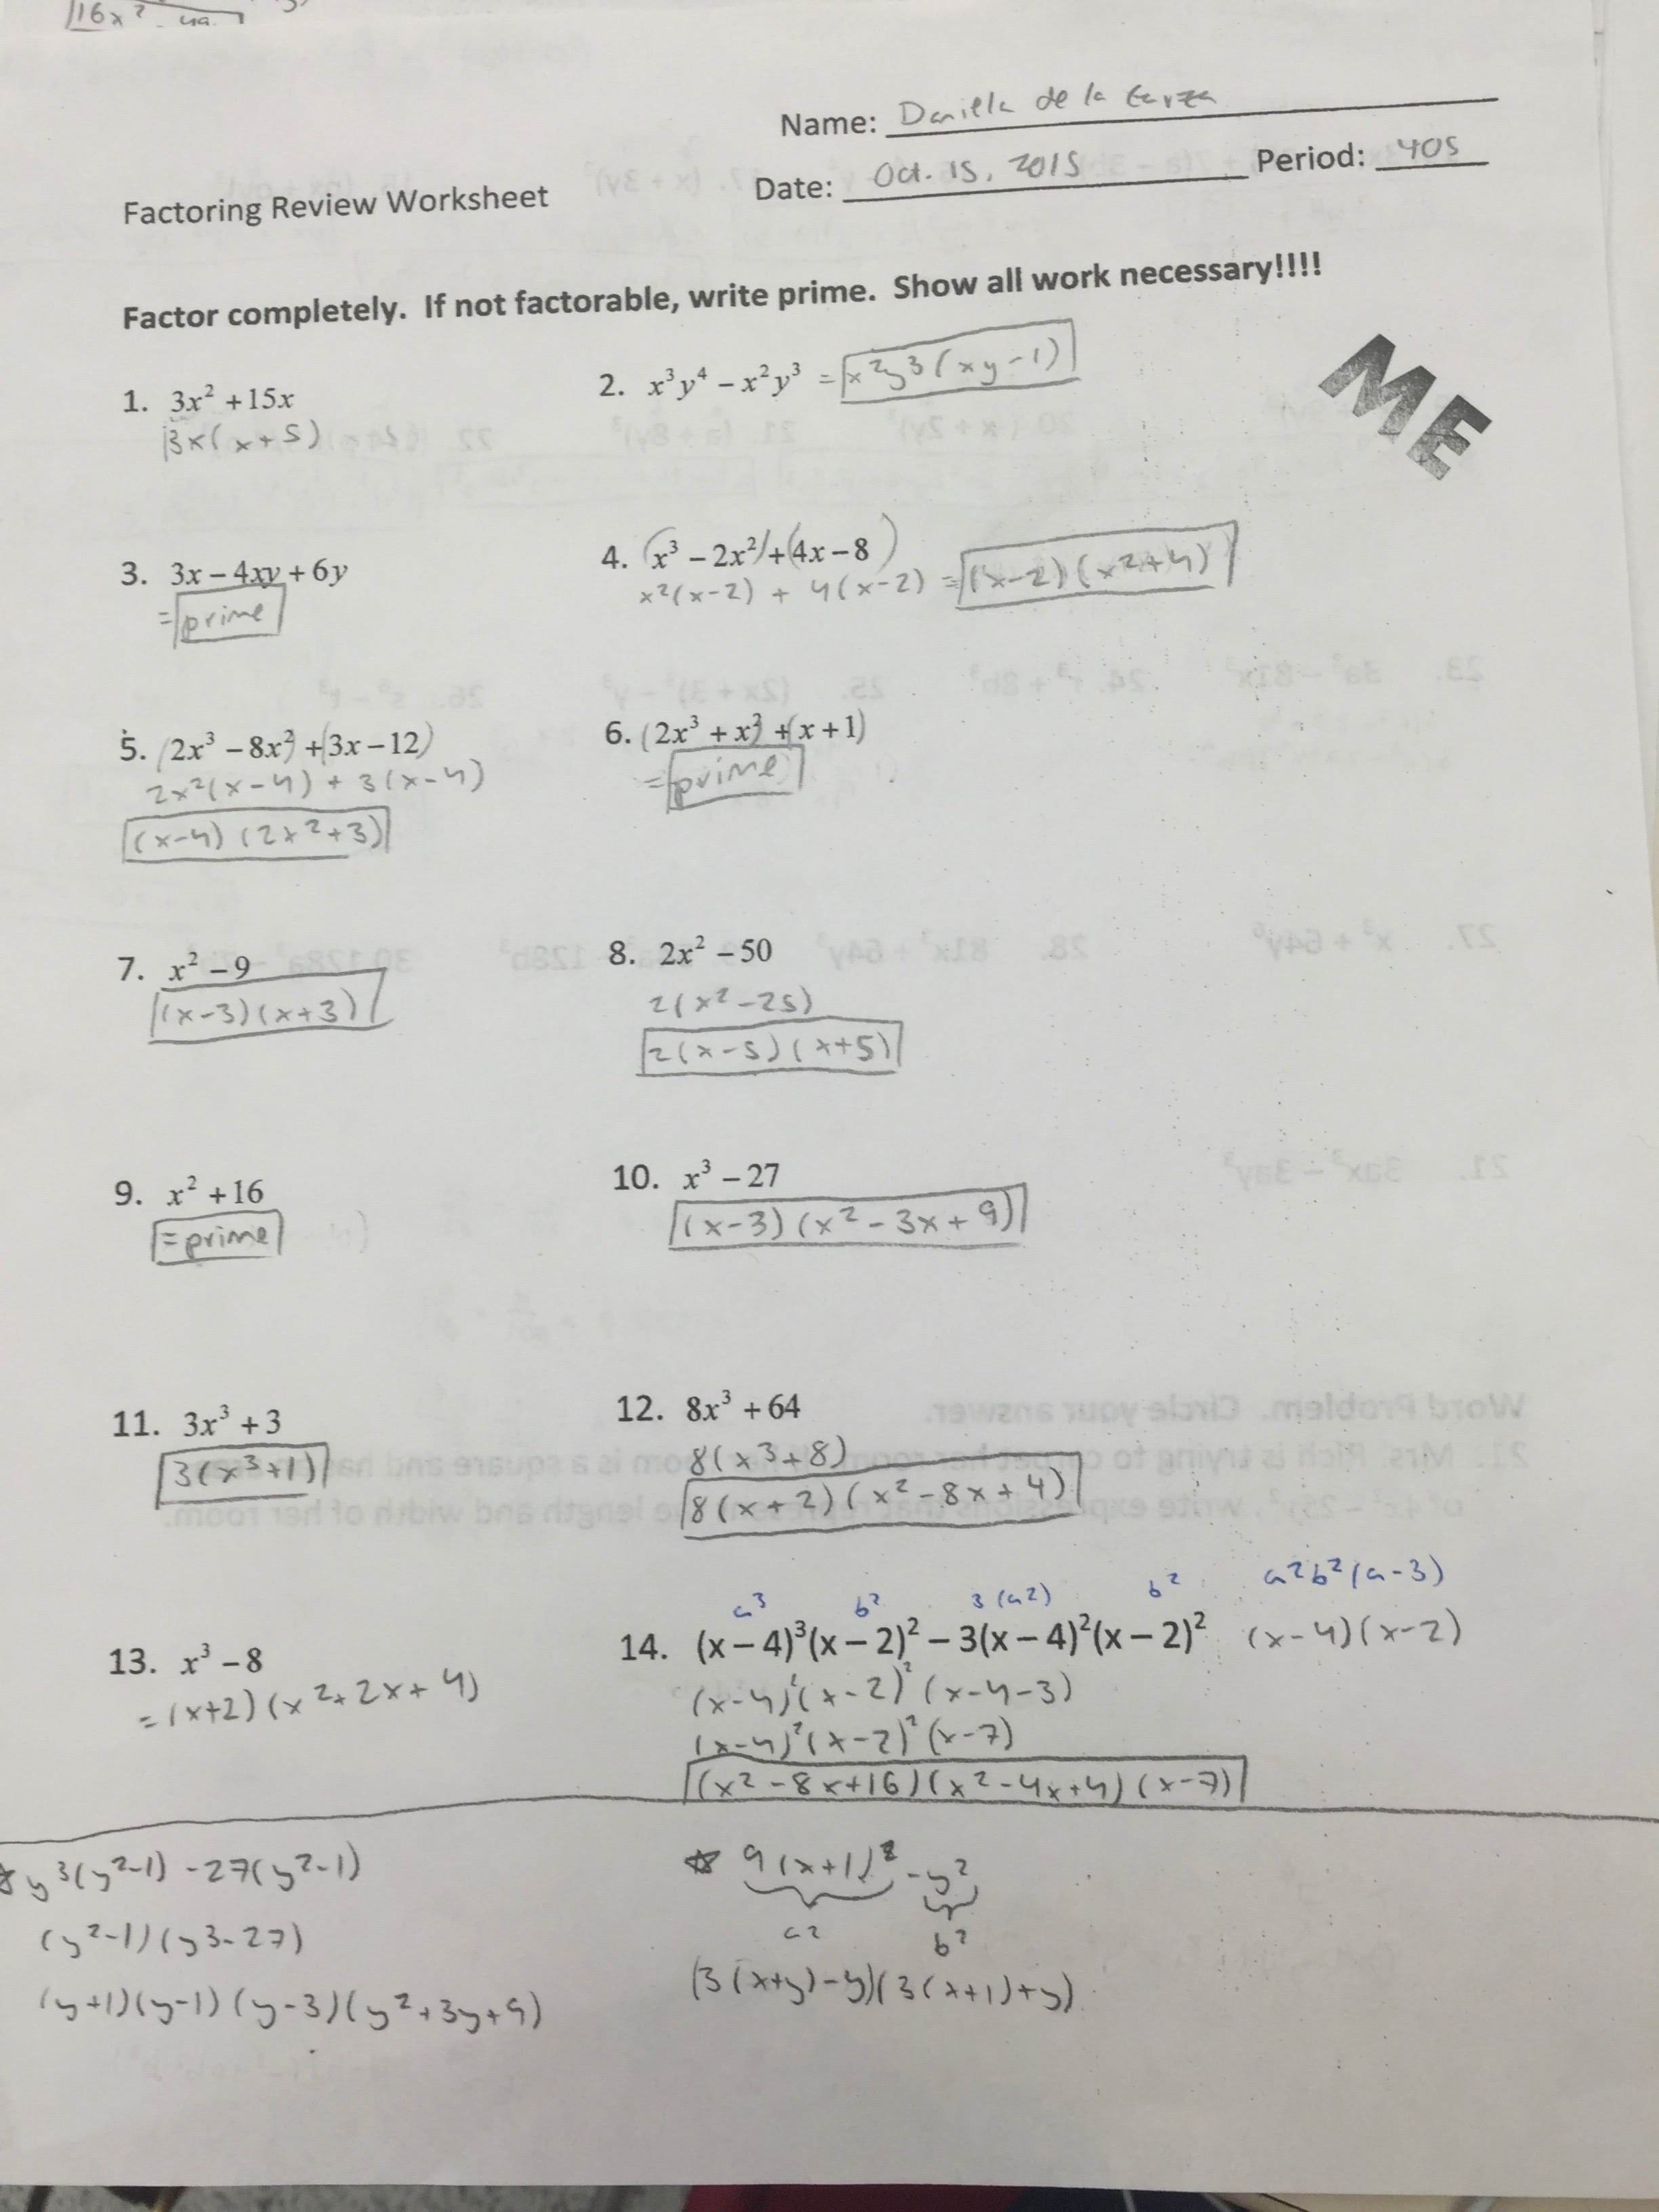 Mixed Factoring Review Worksheet